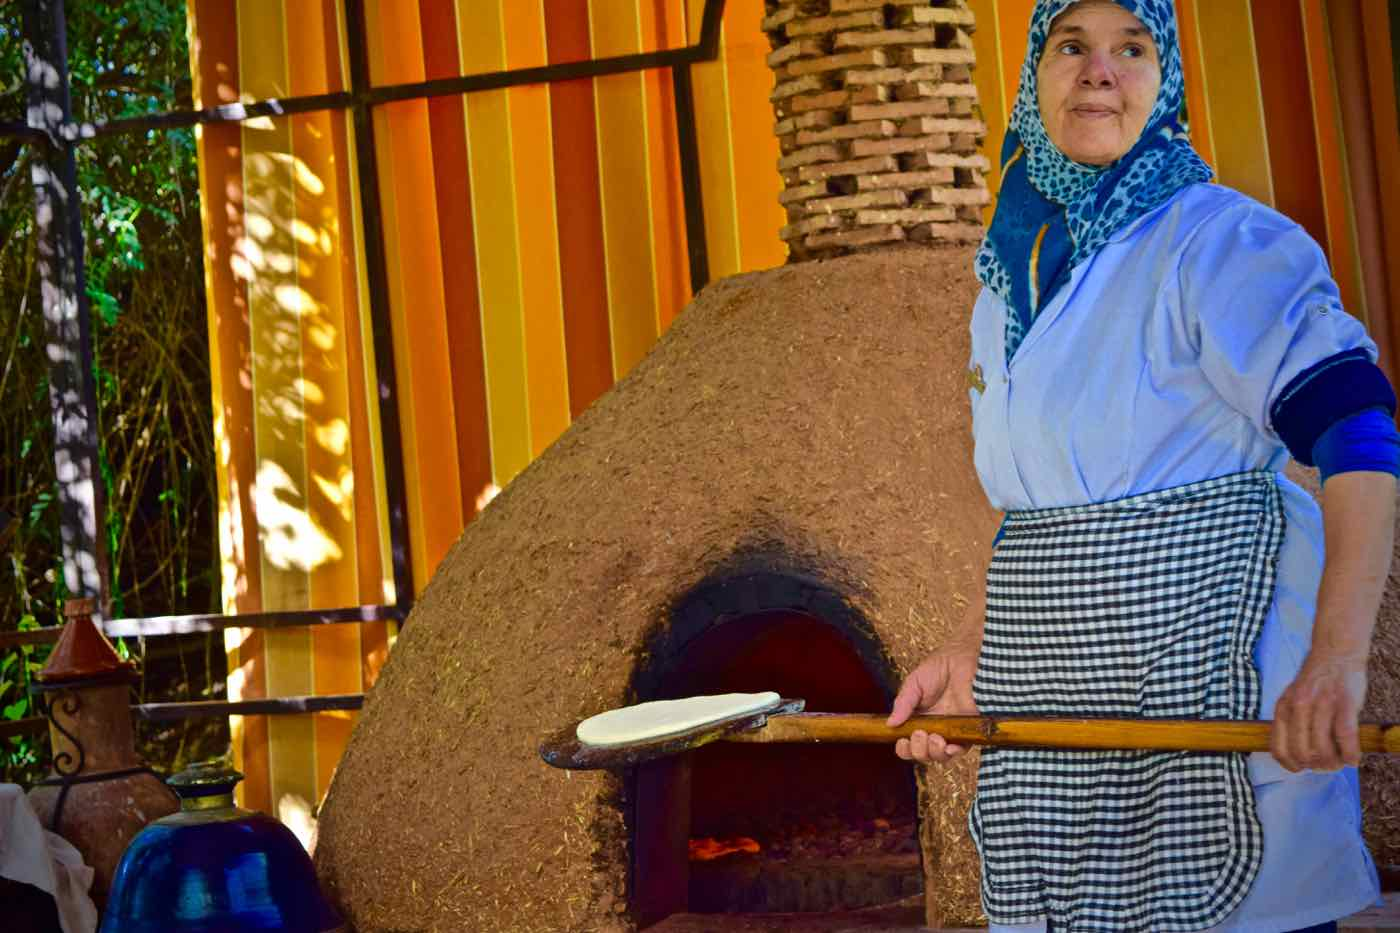 Baking bread at La Maison Arabe Marrakech